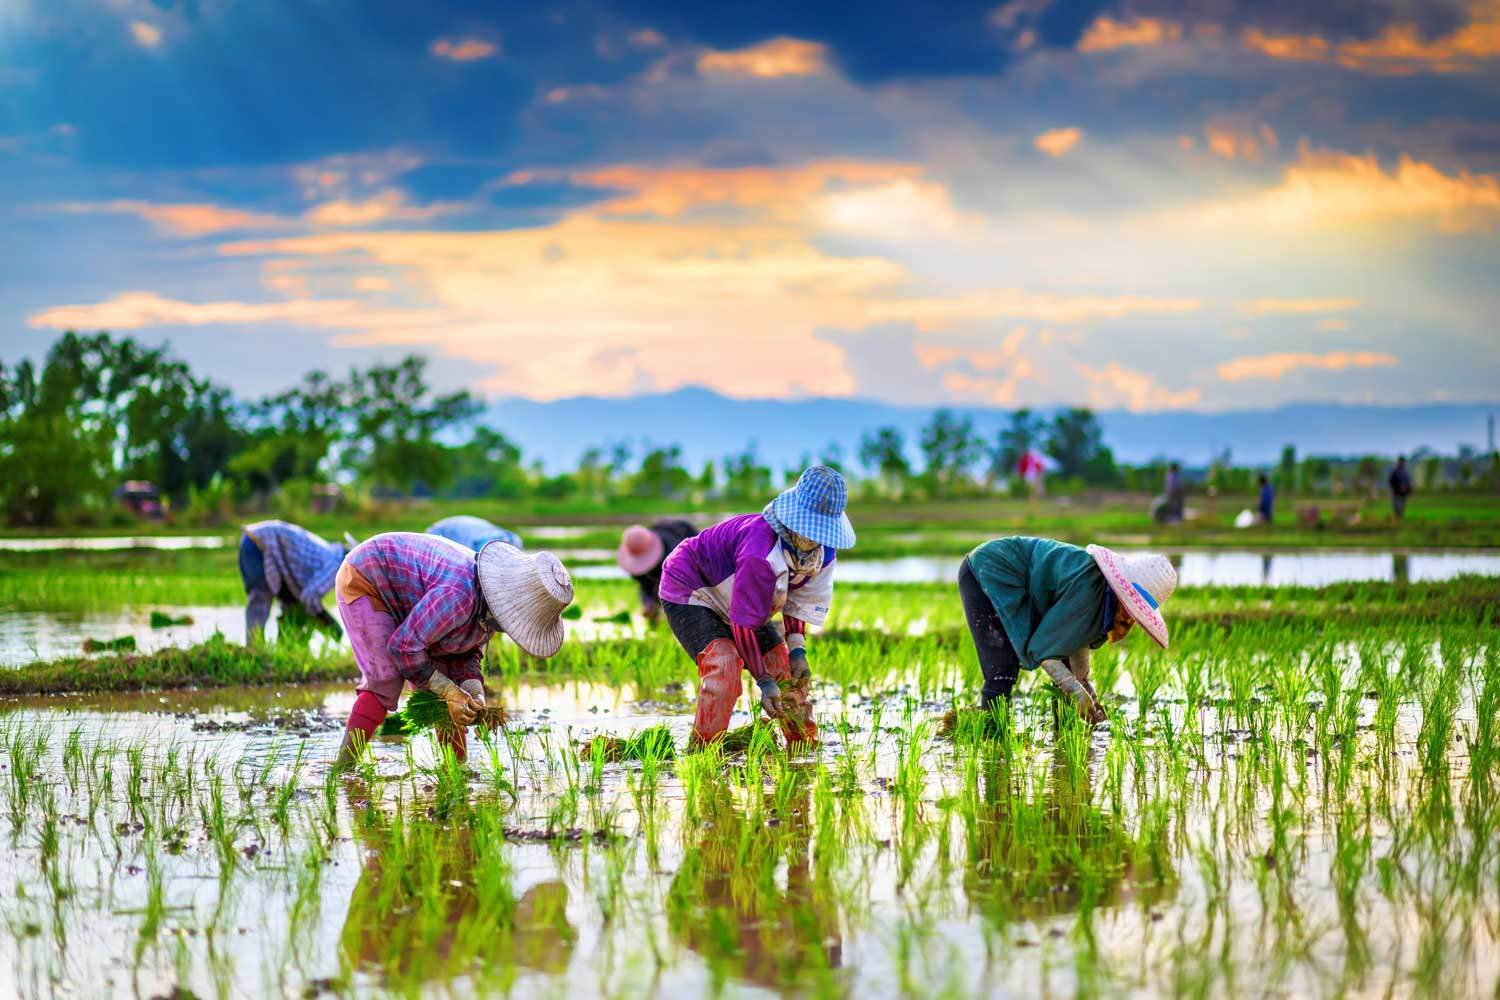 People working in rice field